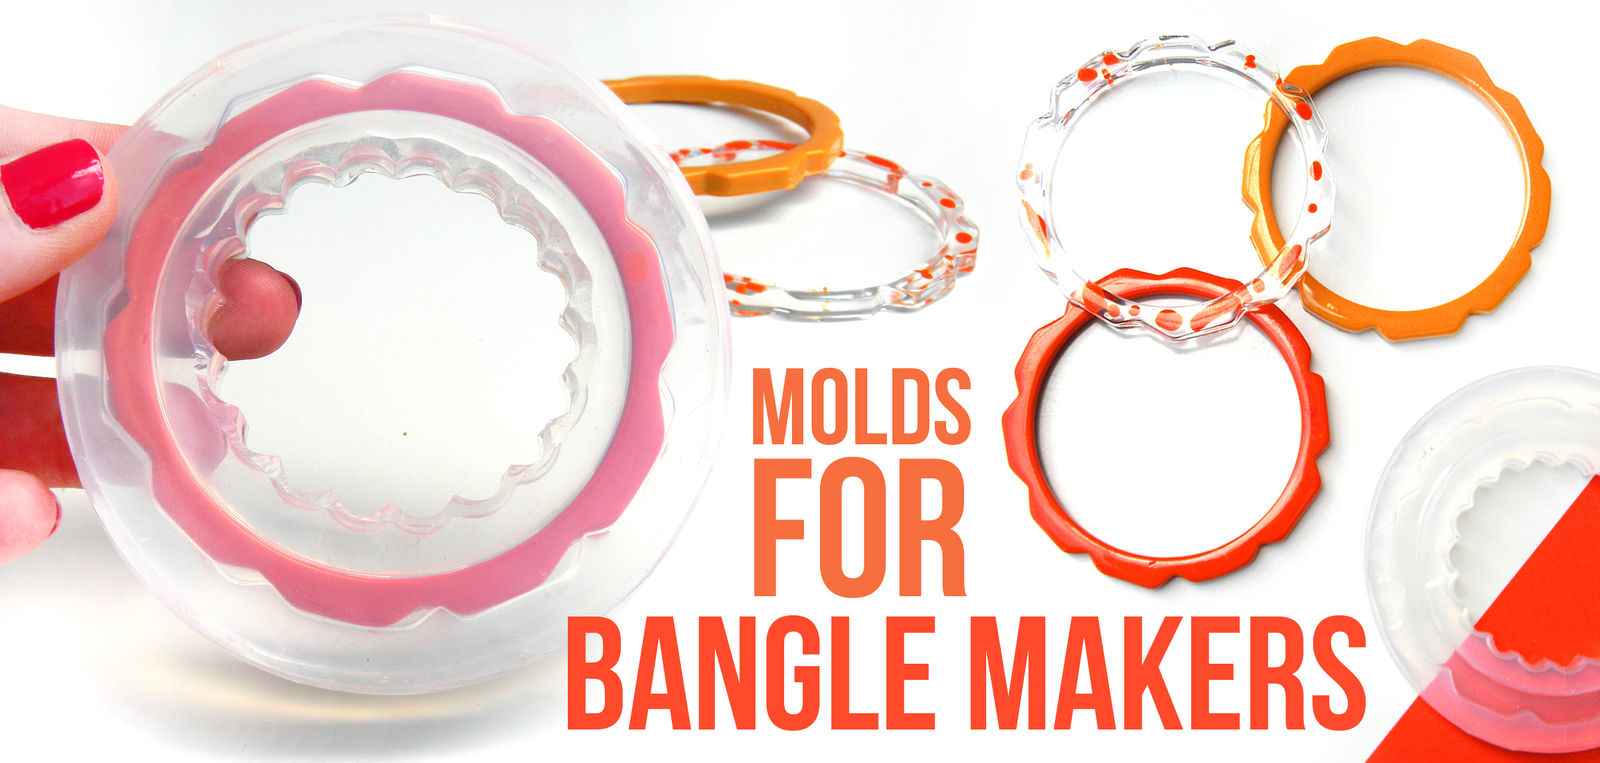 MOLDS TO CREATE BANGLES